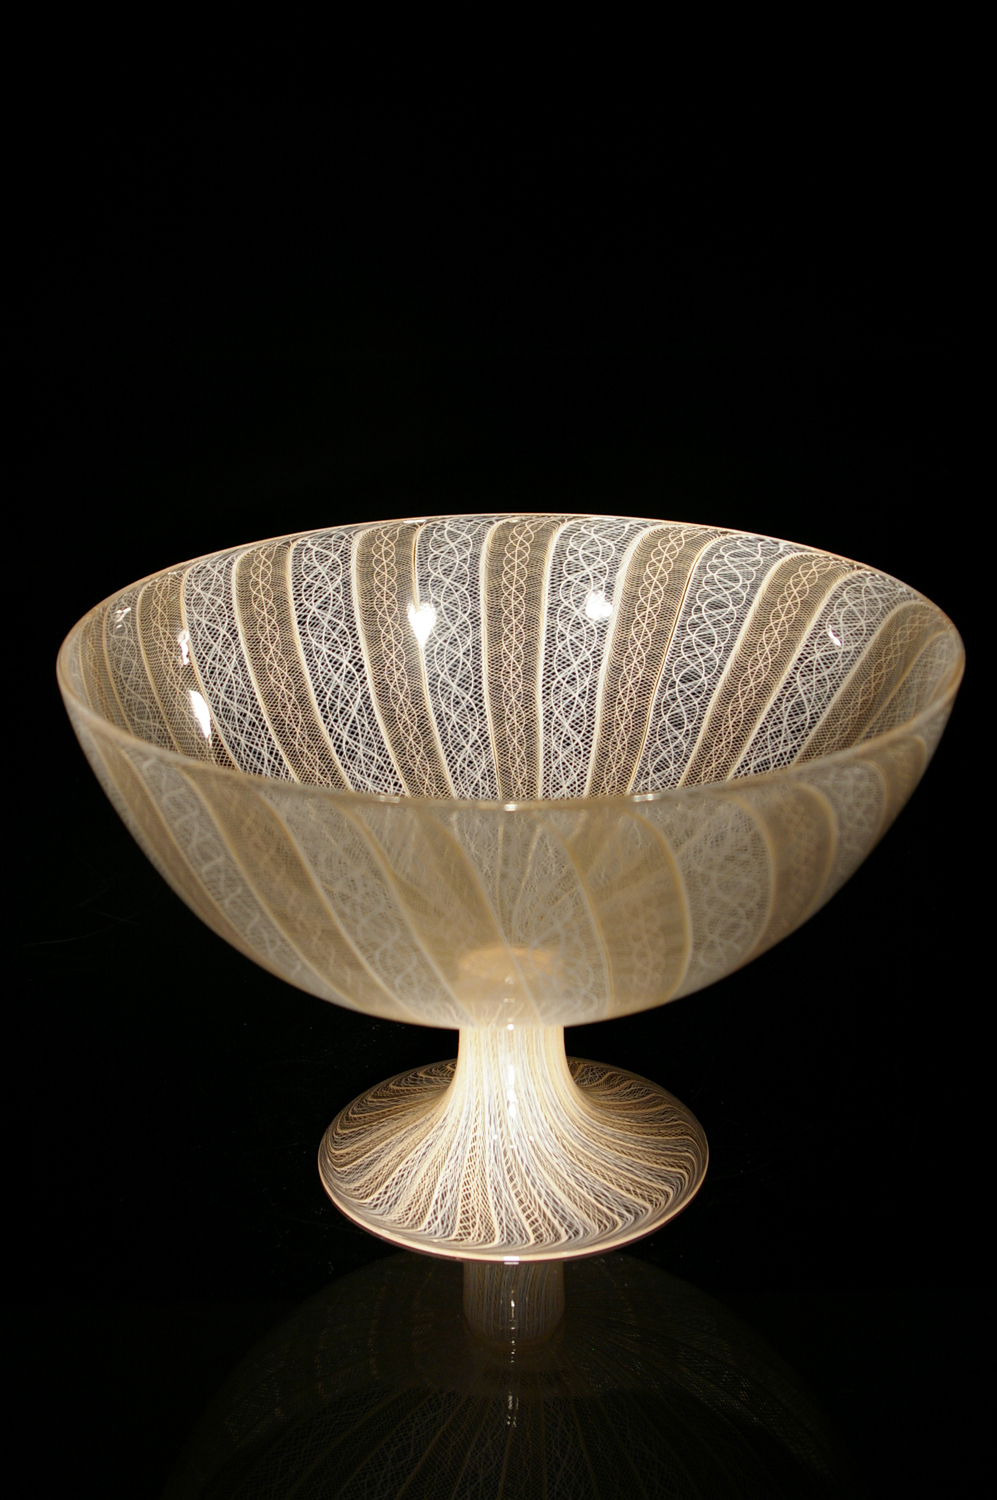 Peach-White-Cane-Footed-Bowl